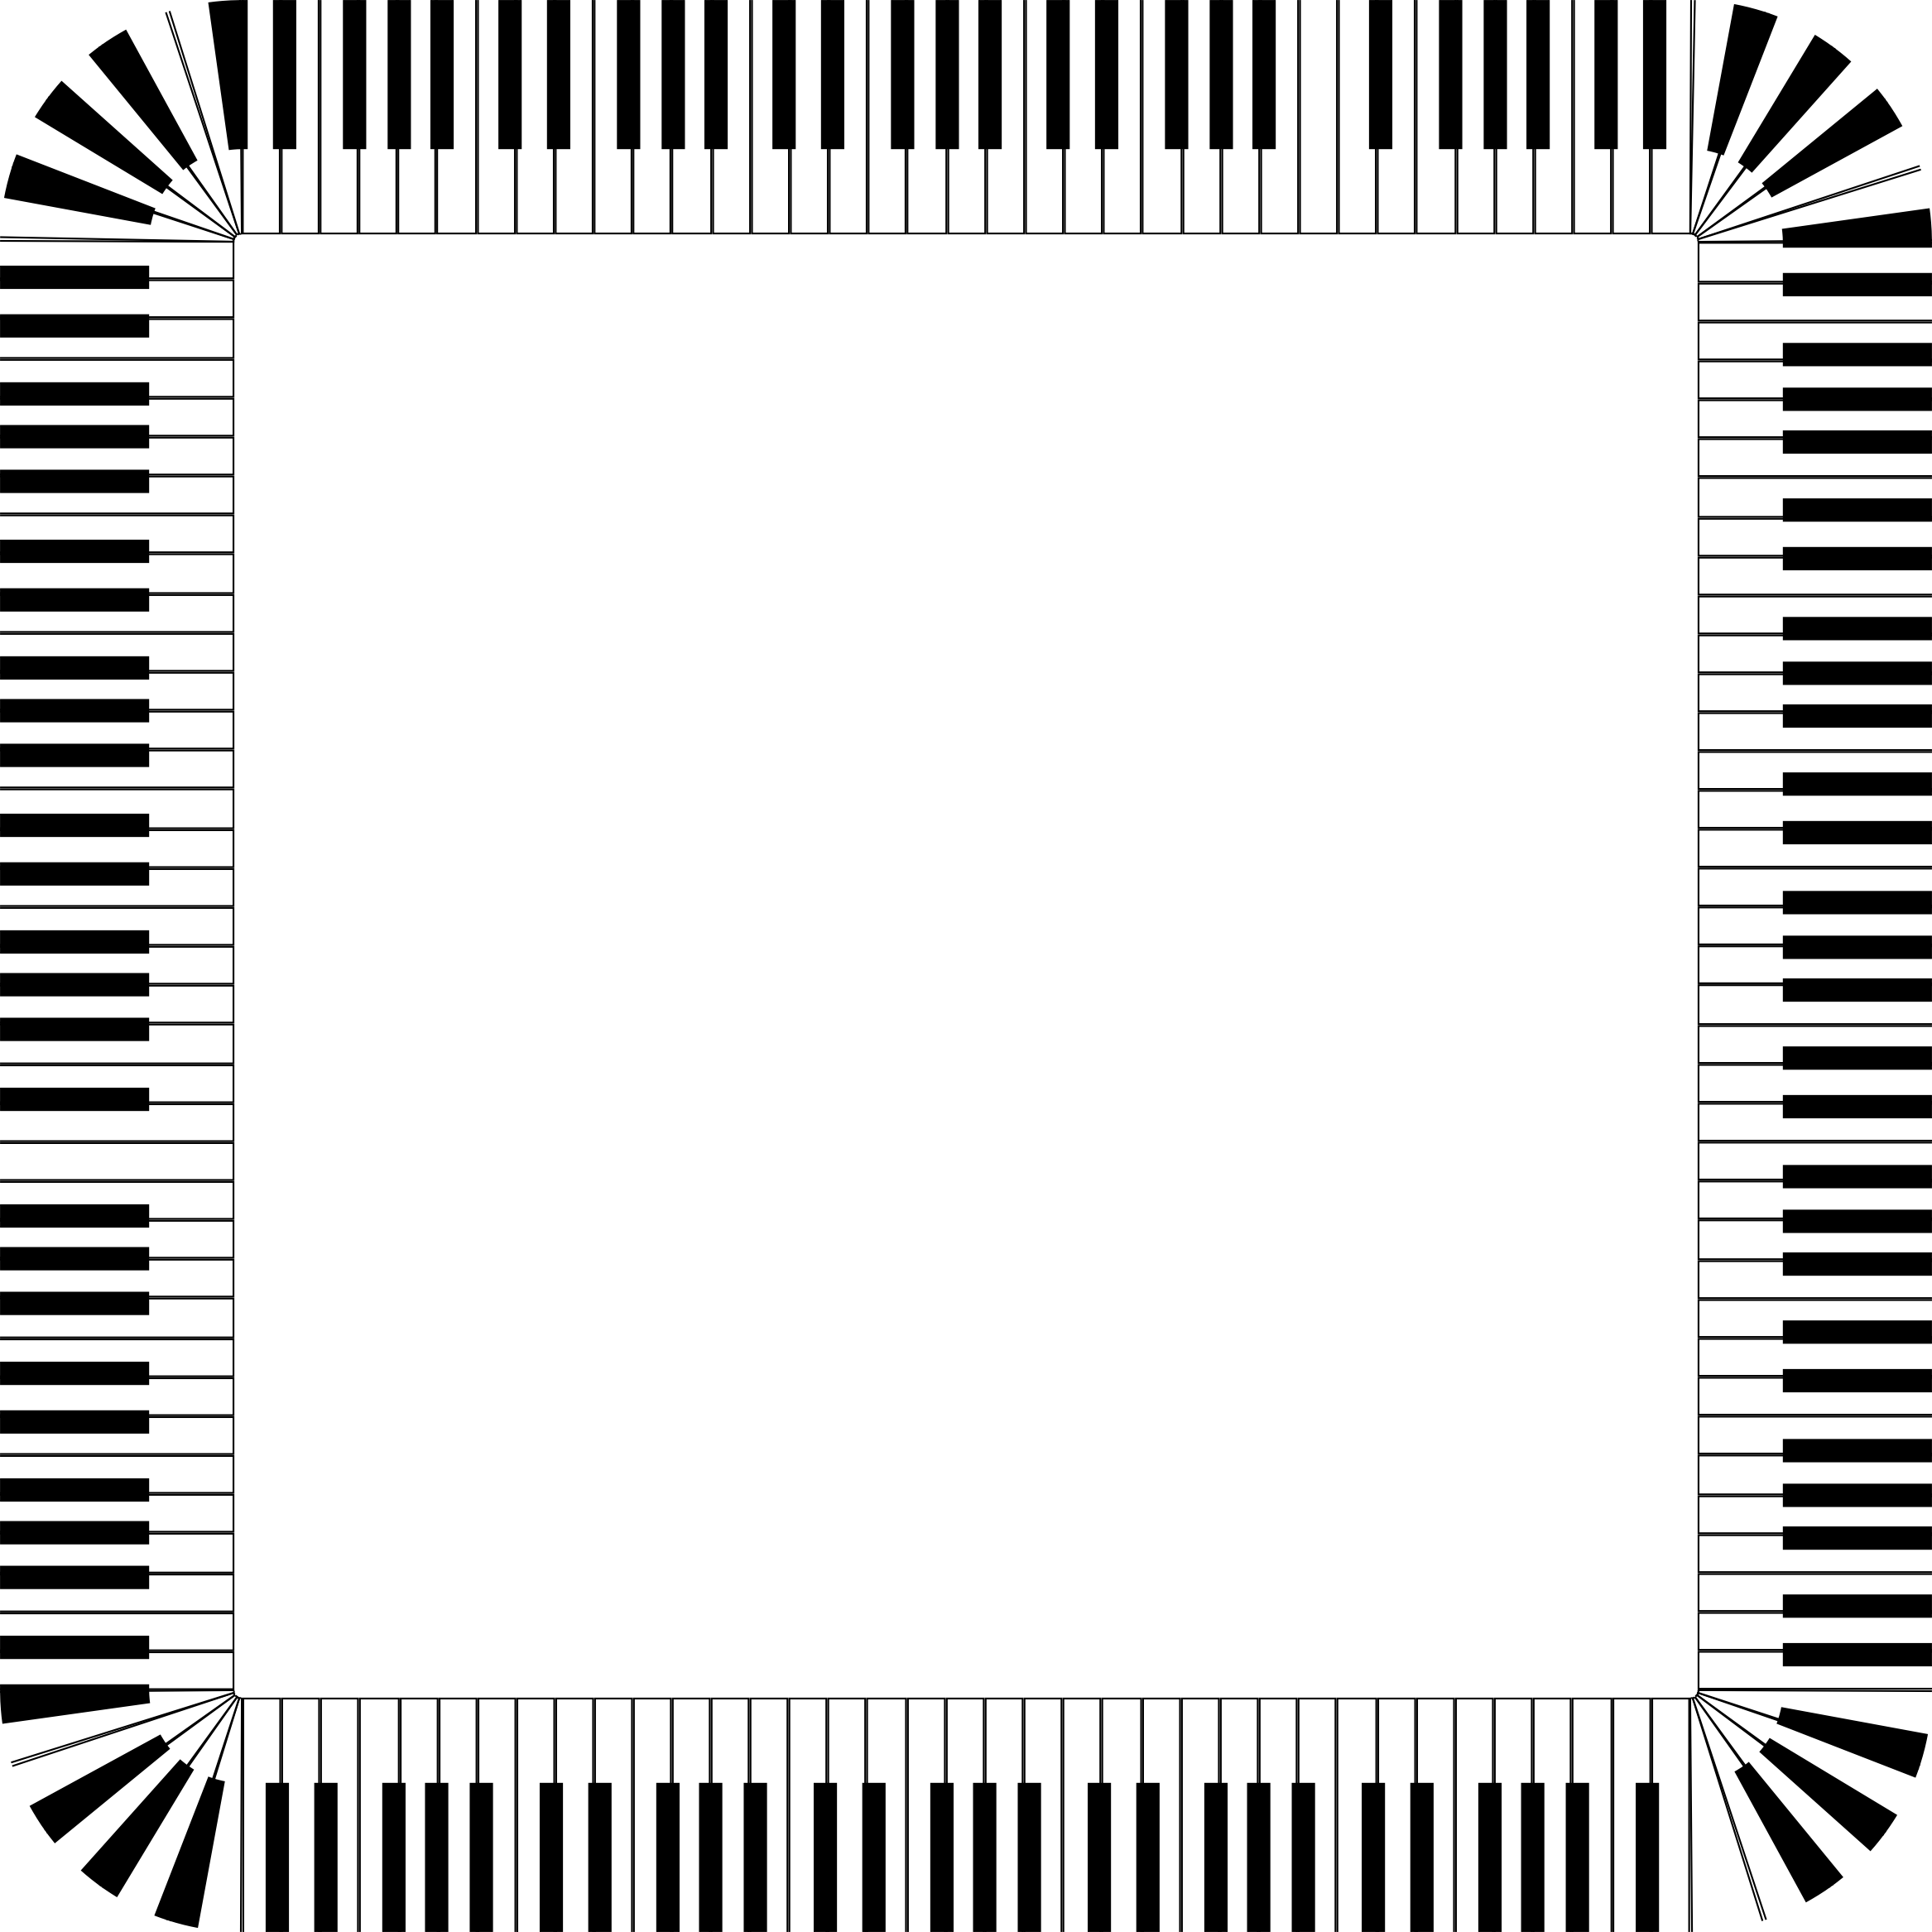 Piano clipart border. Keys rounded square big